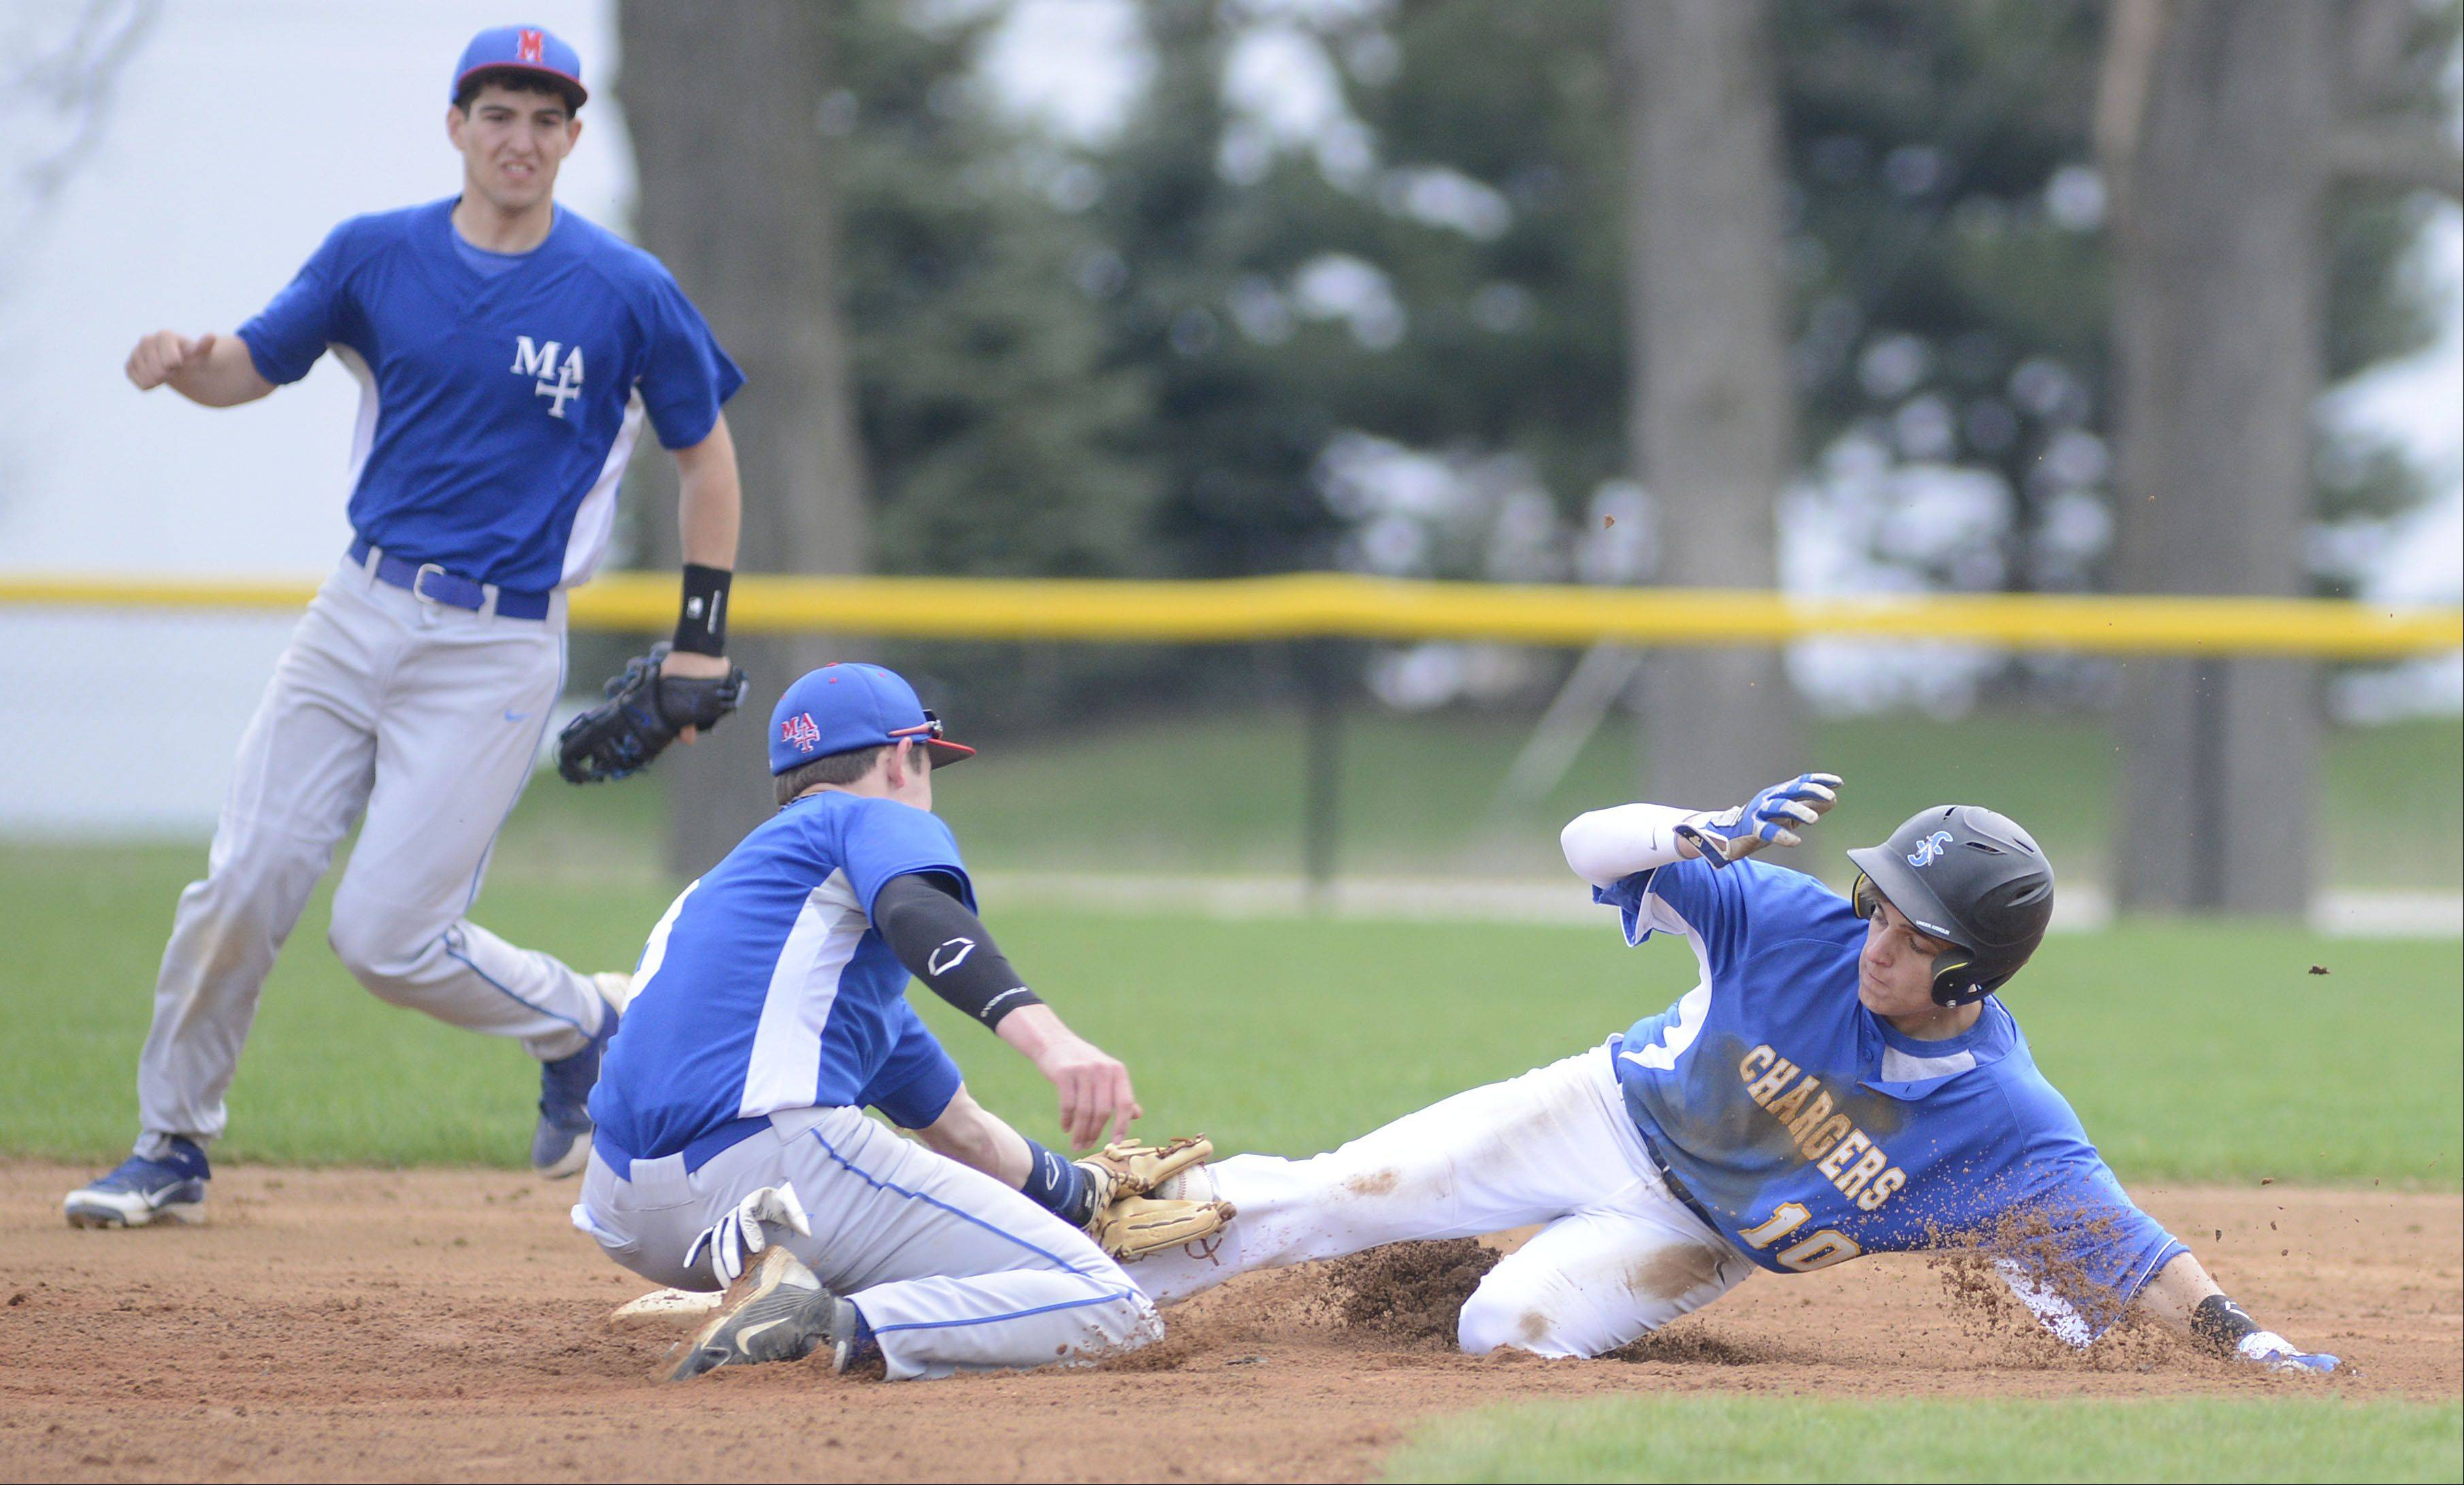 Aurora Central's Hunter Fiorito is safe on a slide into second base from Marmion's Josh Meyers in the first inning on Thursday, May 2.